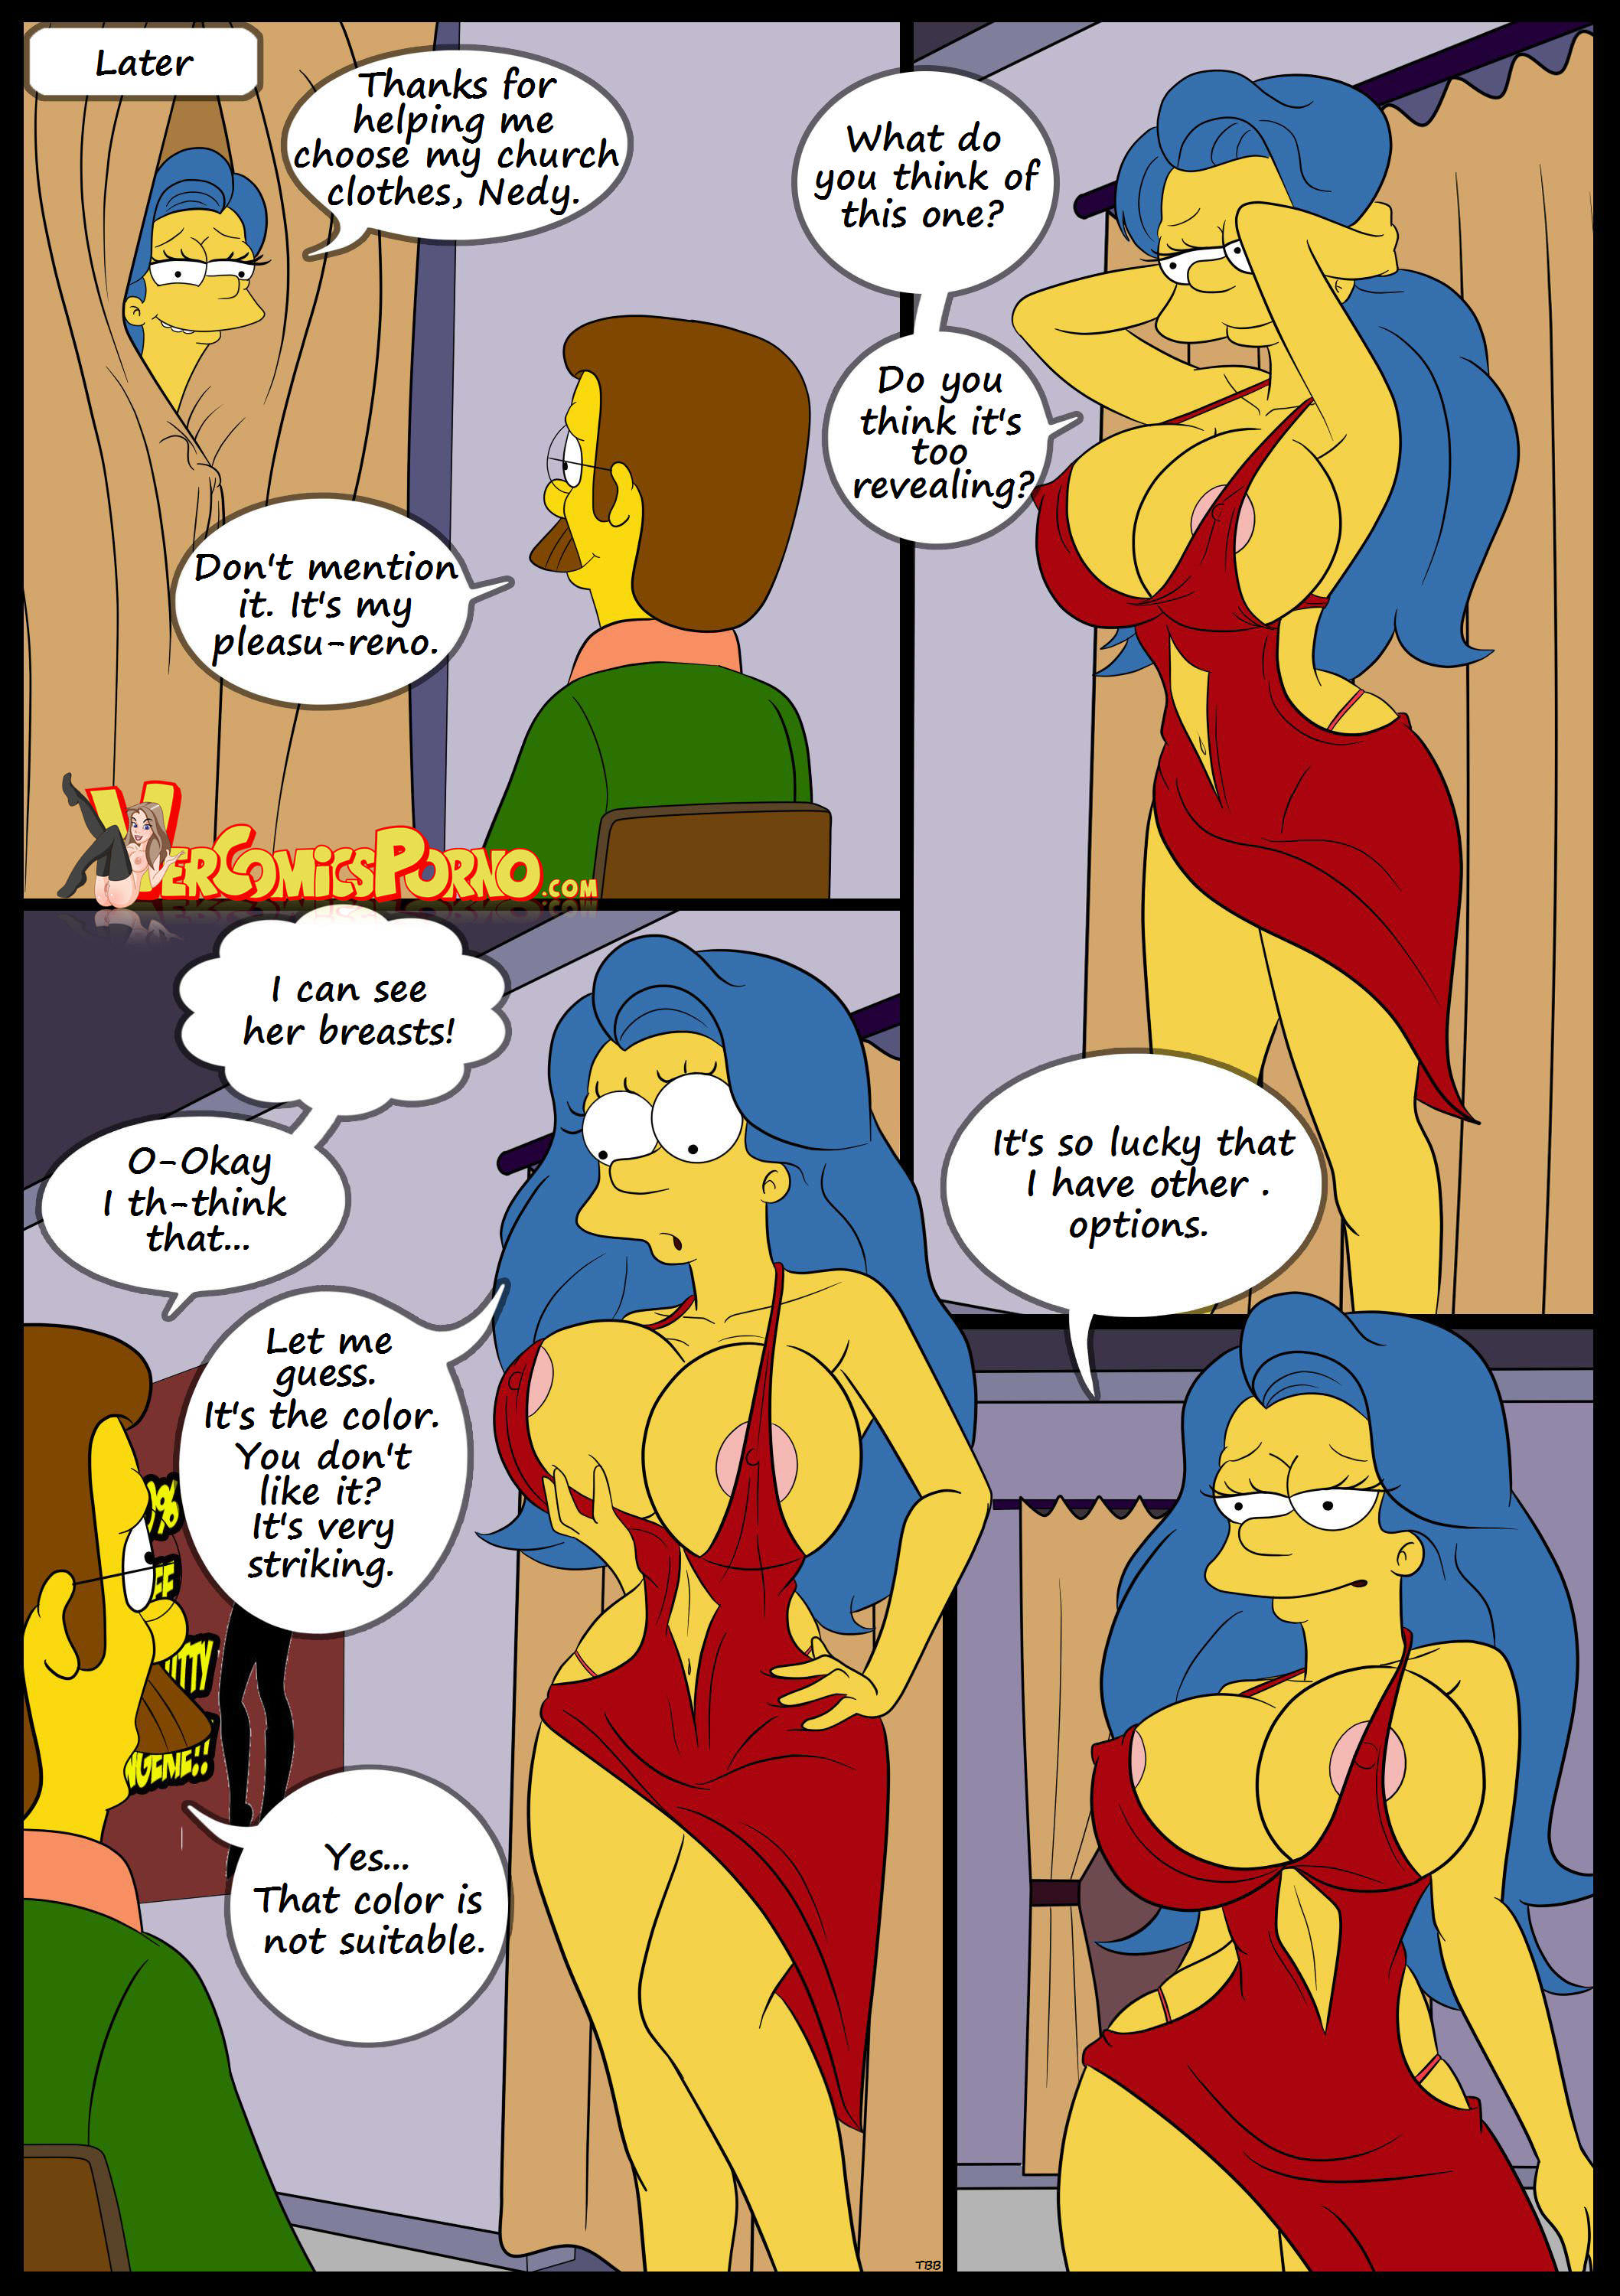 Thanks The simpsons porn comix